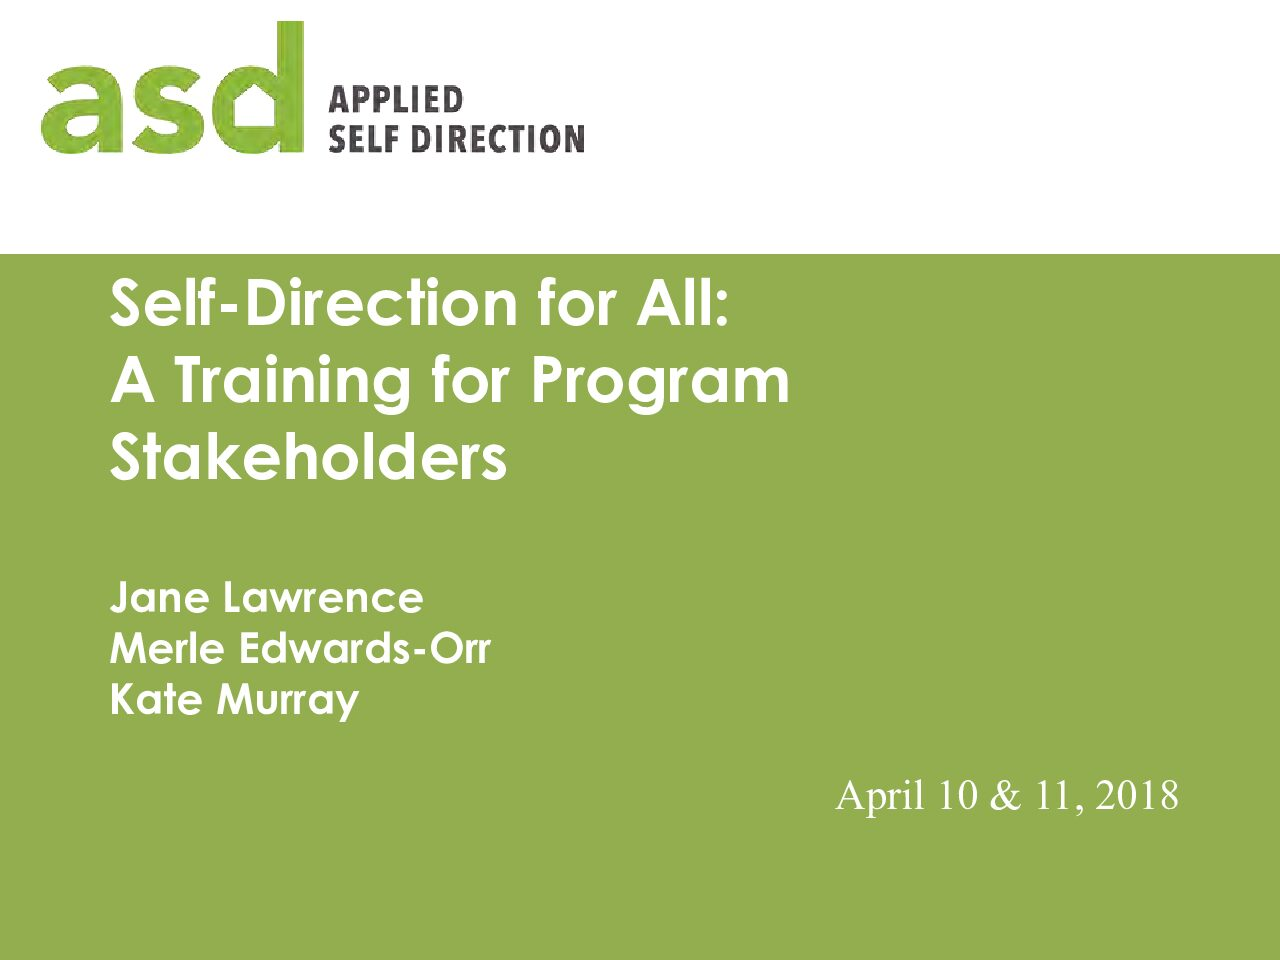 Self-Direction for All: A Training for Program Stakeholders